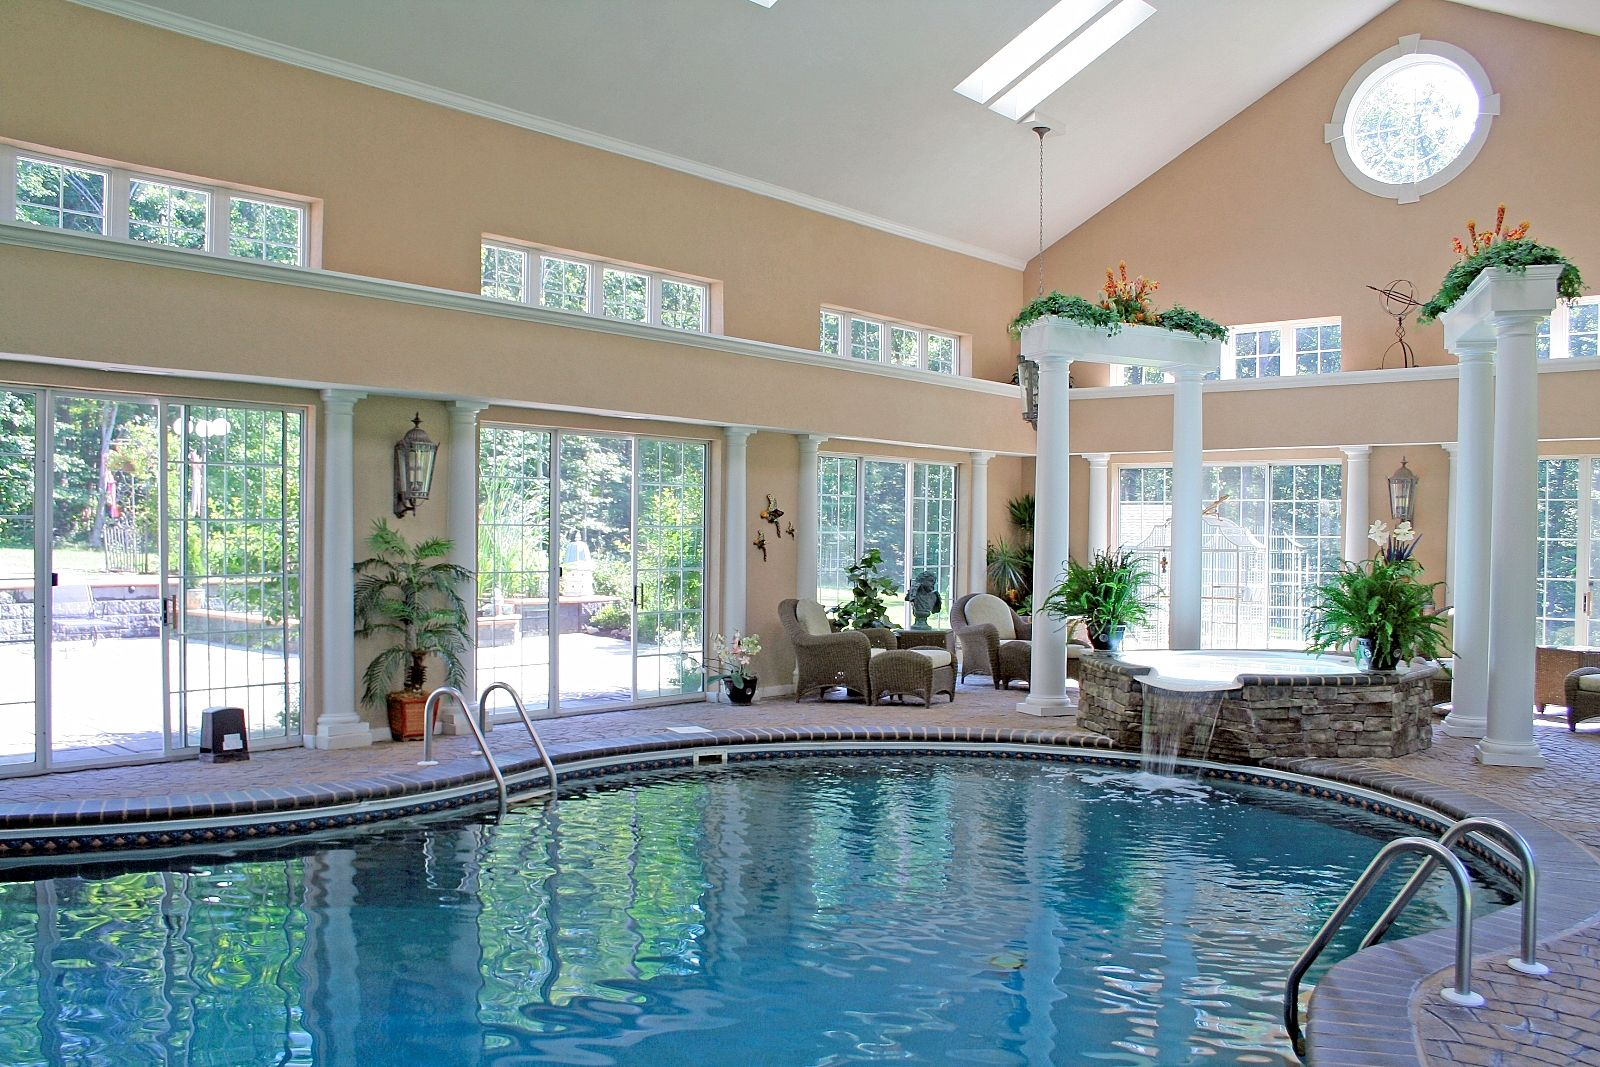 Indoor Pools In Homes Impressive The House Swimming Pool Will Not Make The Home Become Perfect If Decorating Design